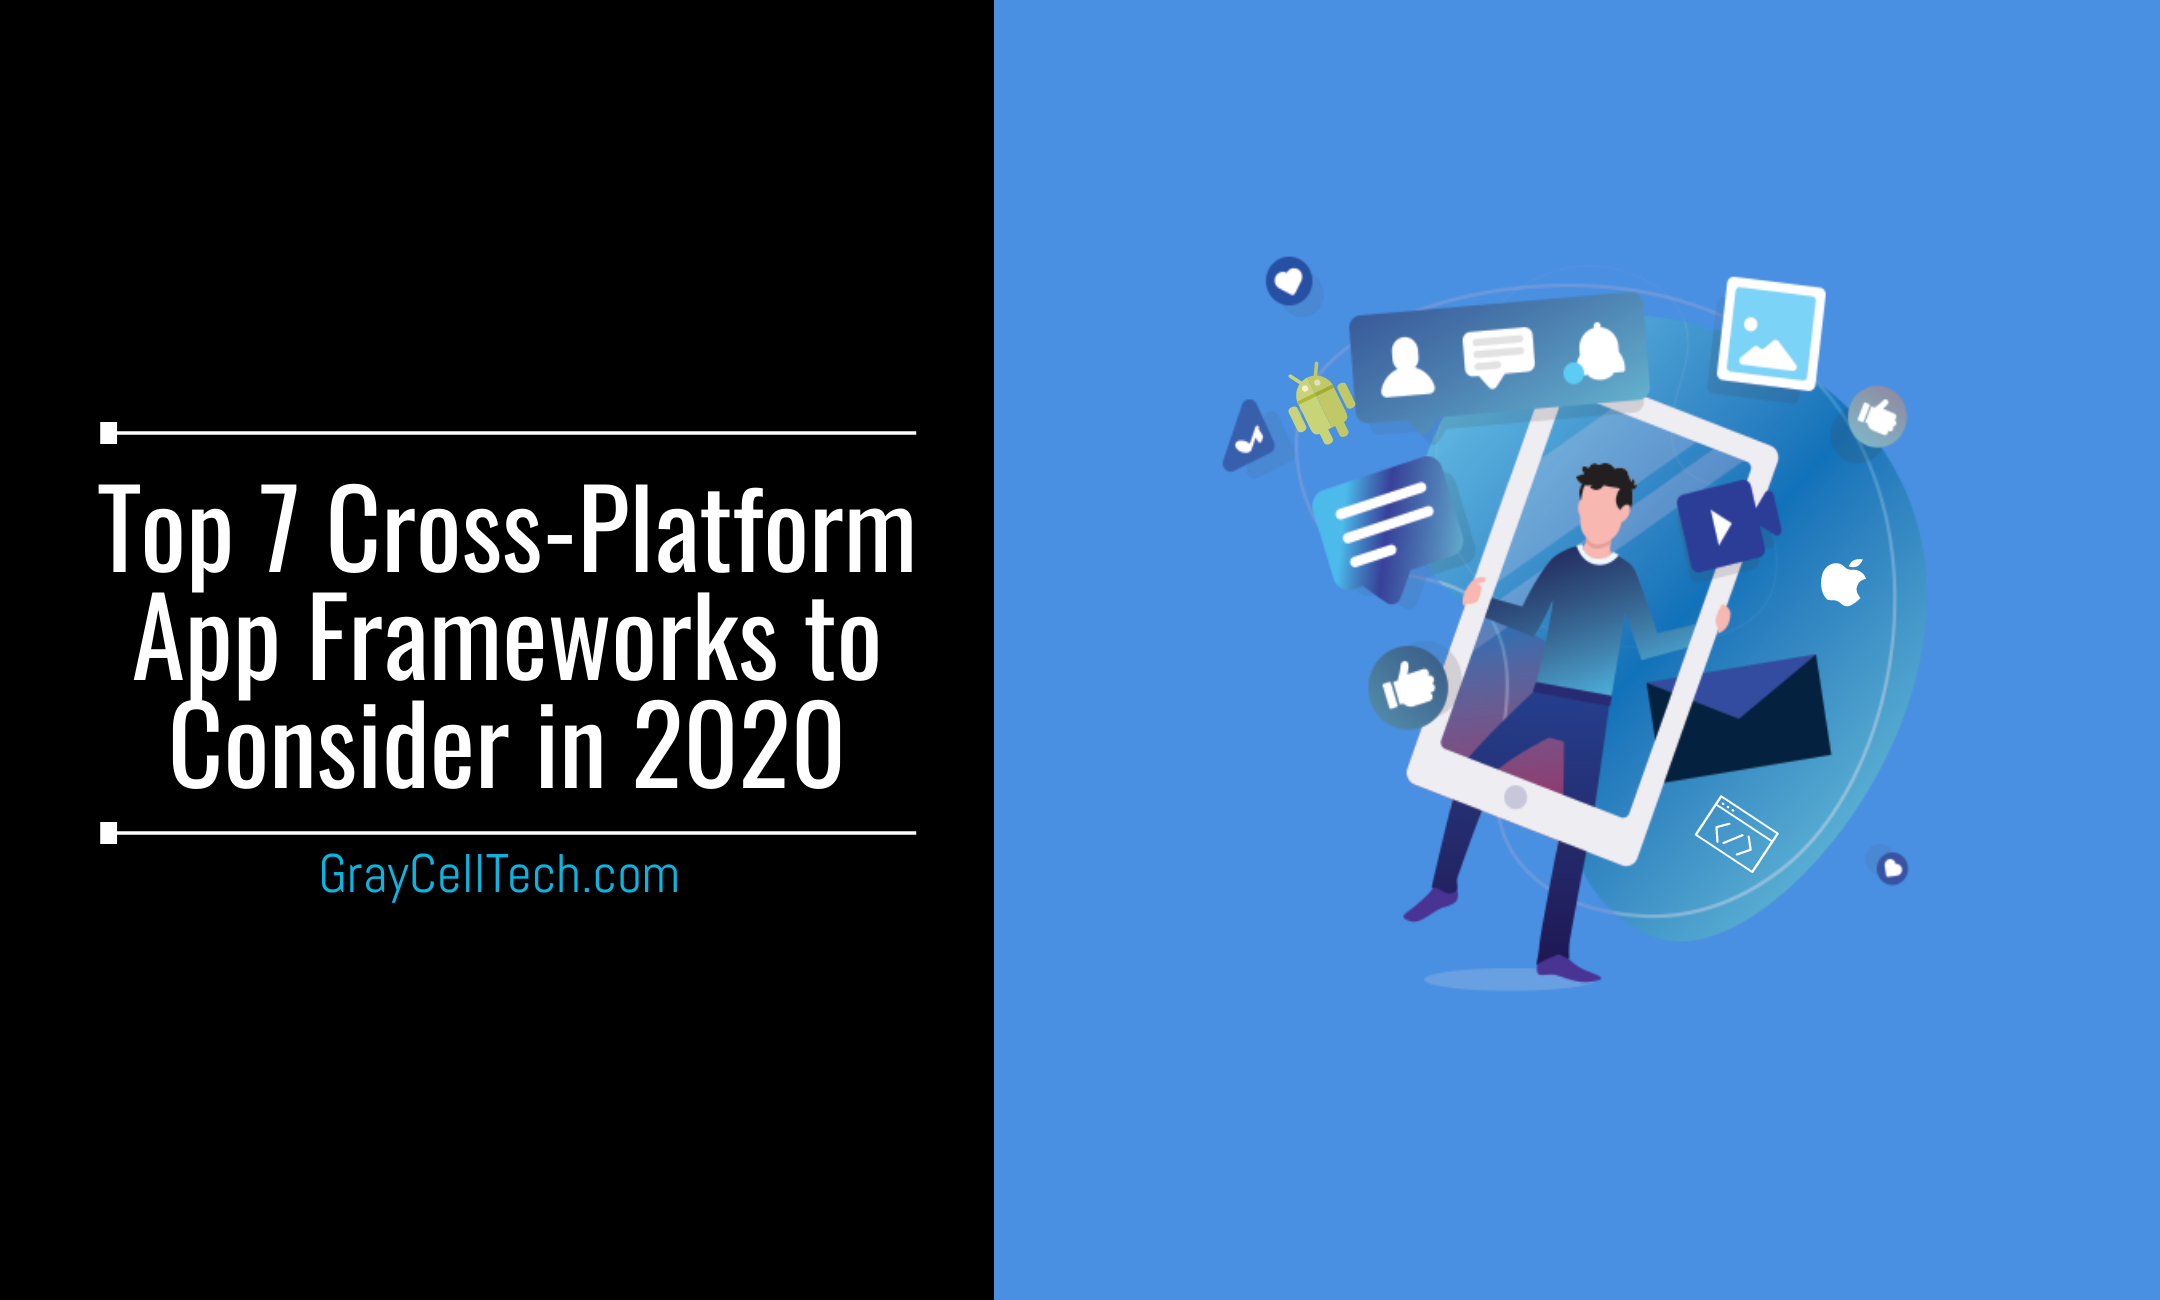 Web and Mobile App development: Top 7 Cross-Platform App Frameworks to Consider in 2020